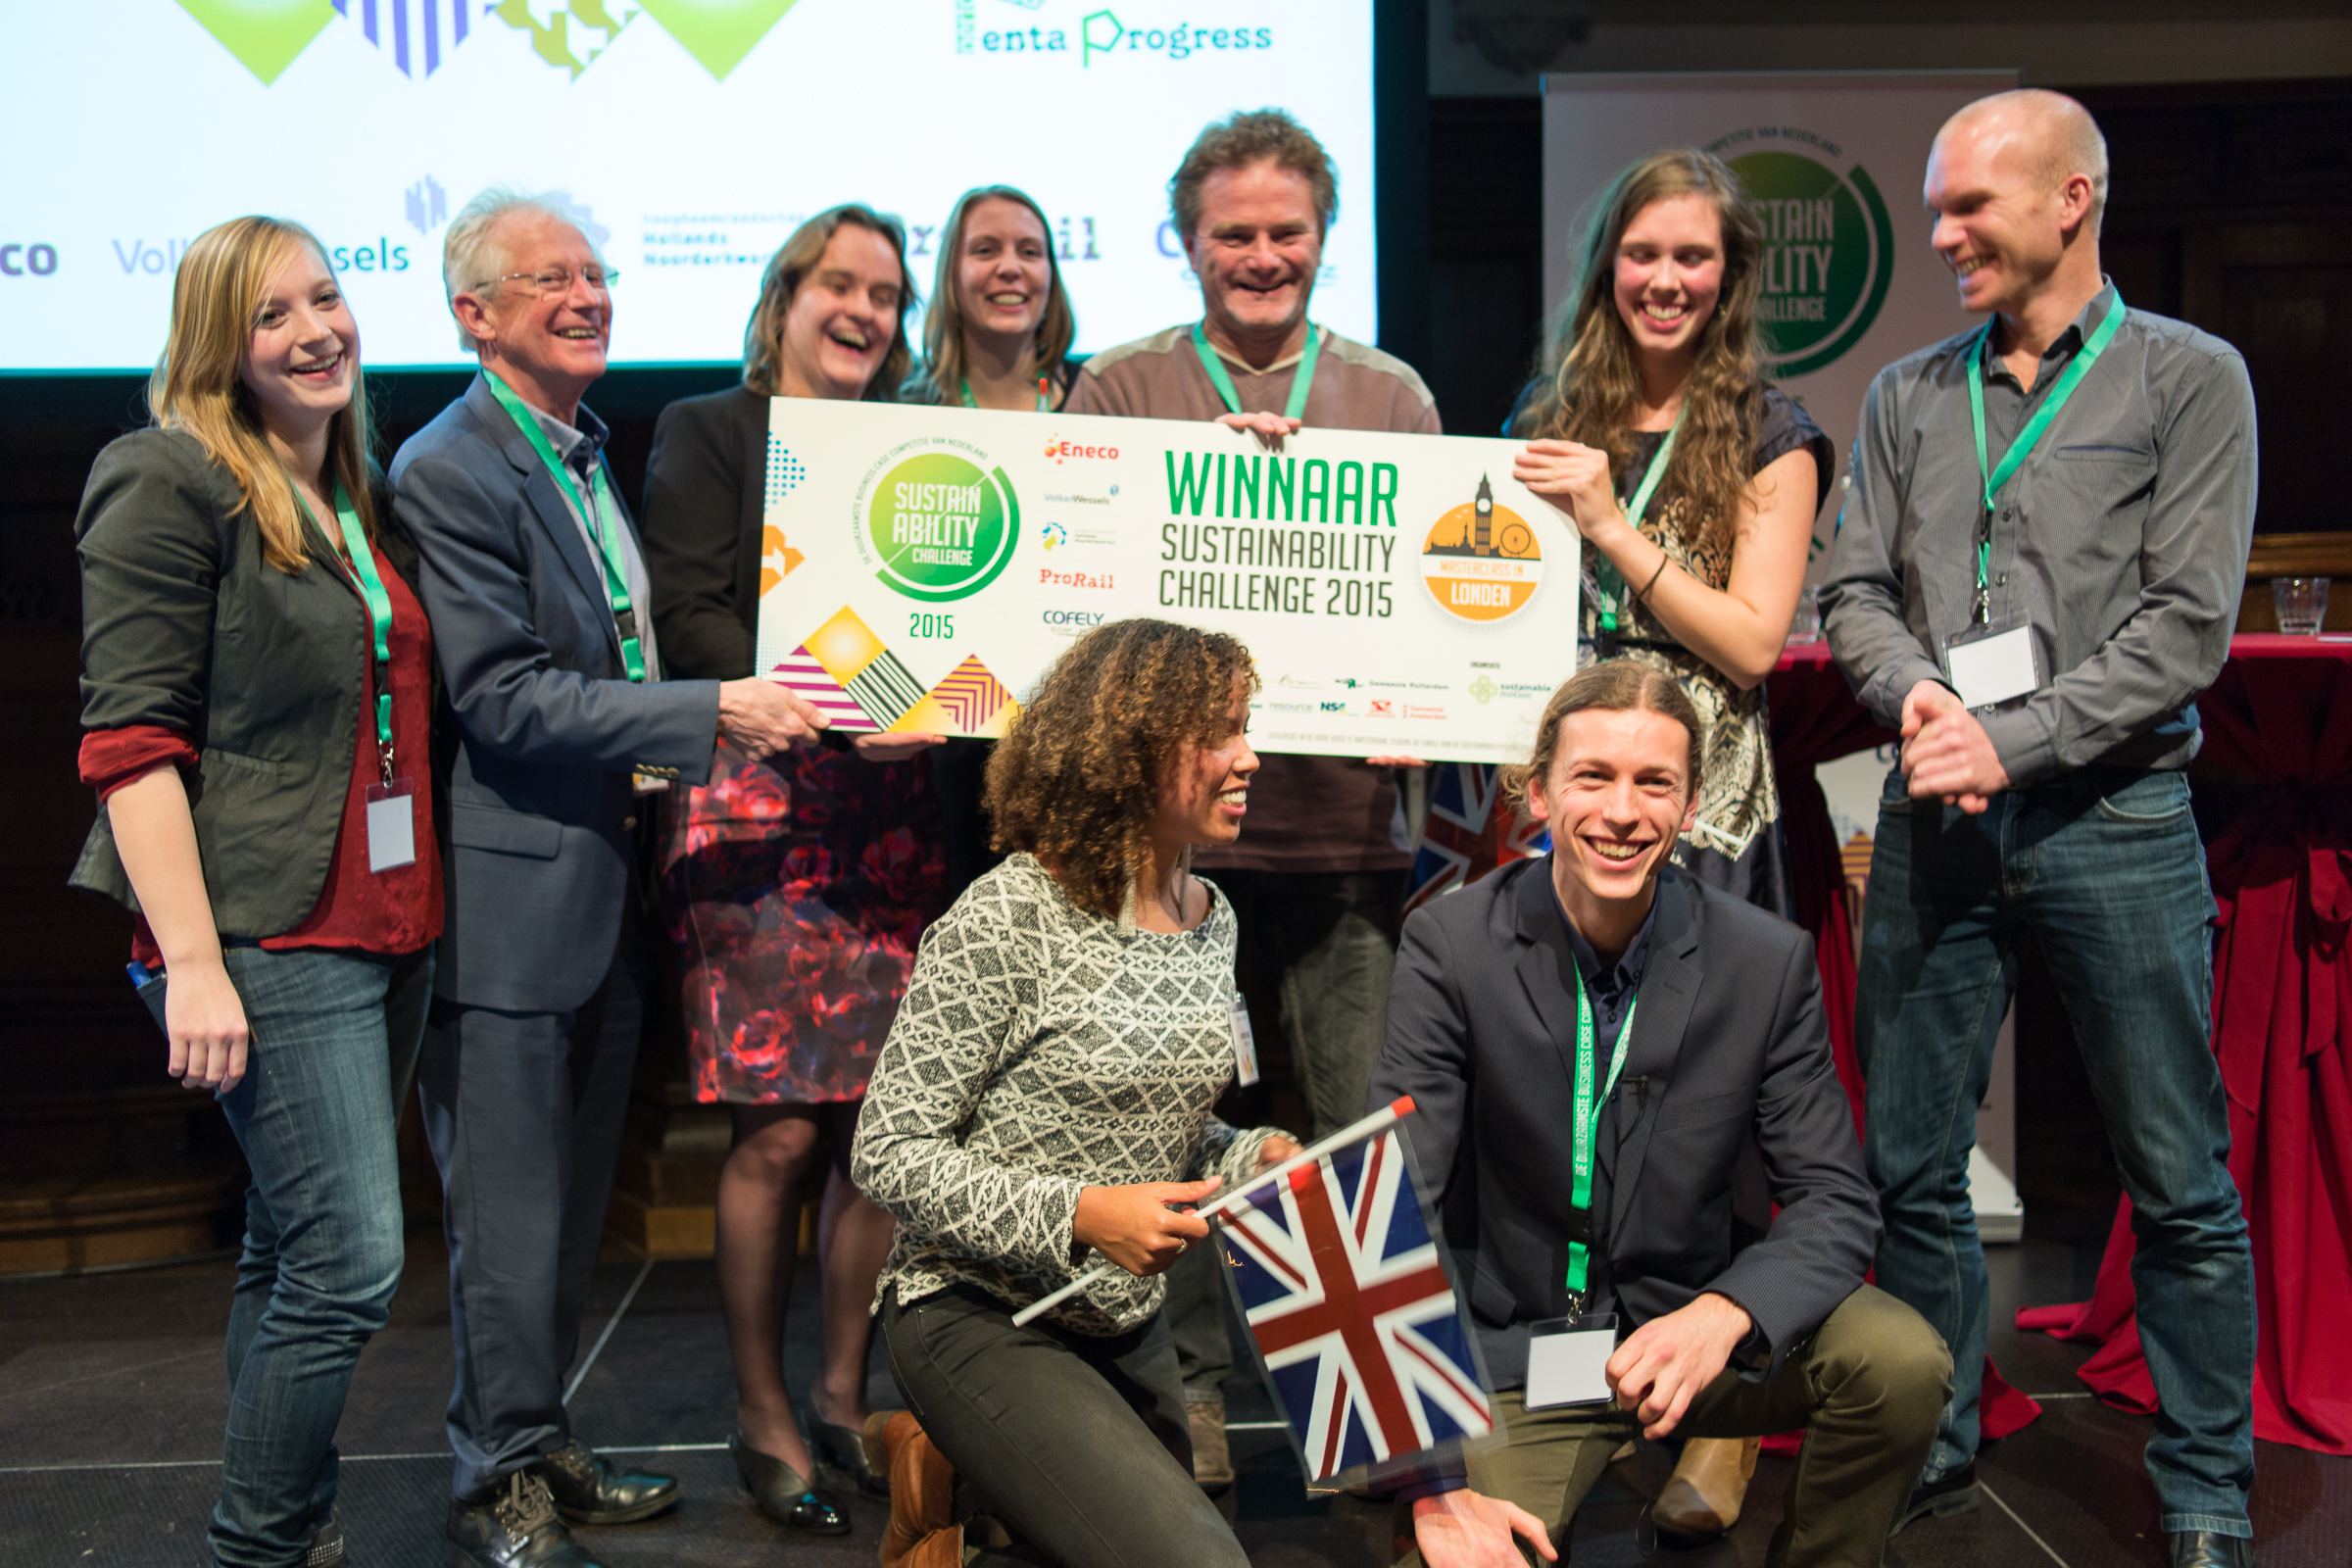 Sustainable Business Challenge – Doe Mee!